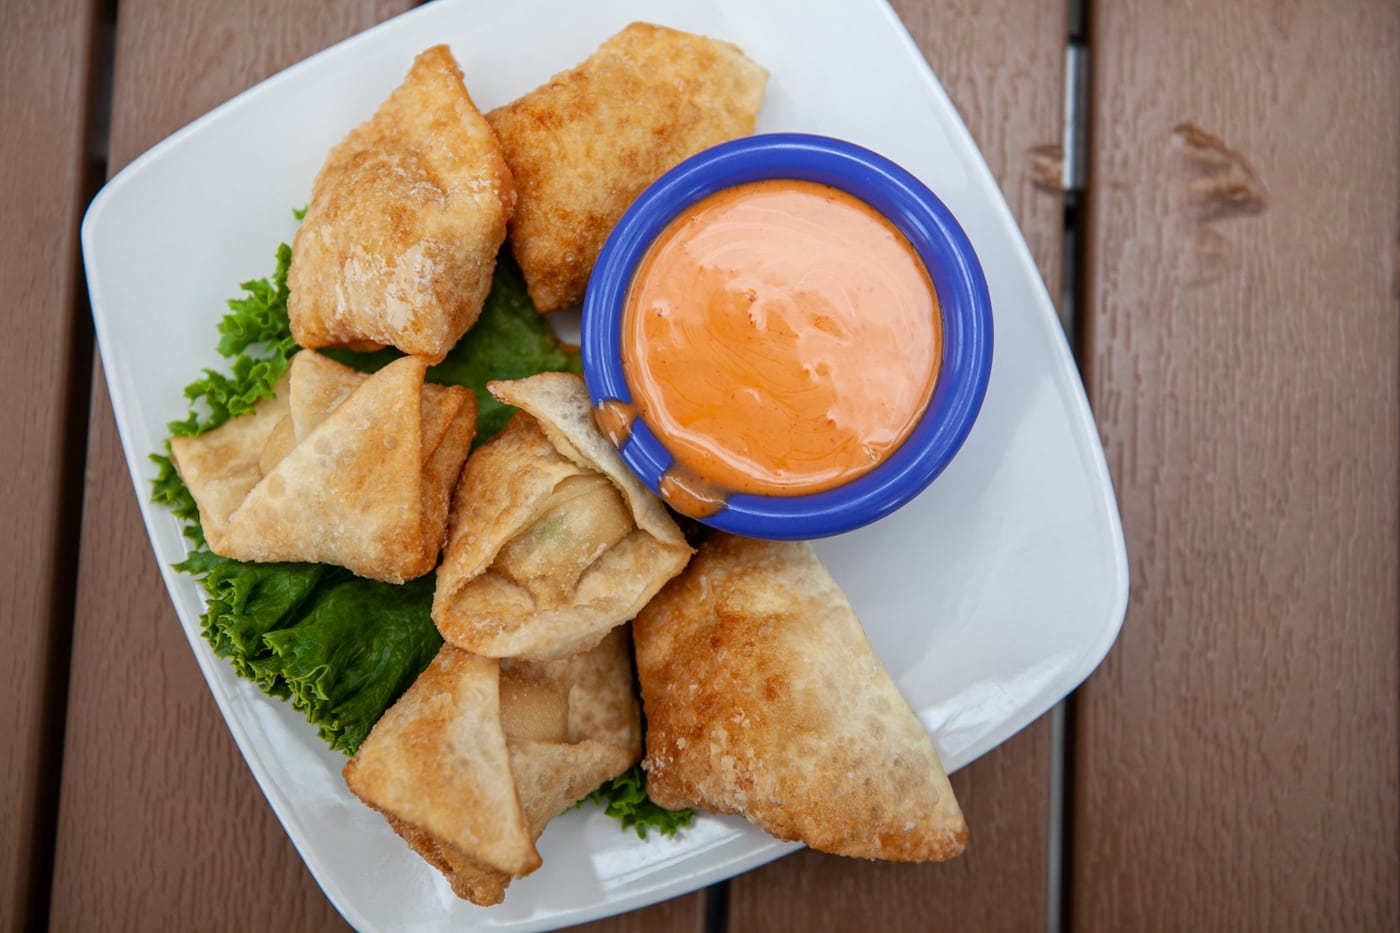 Crab rangoon at Neptune's Brewery in Livingston, Montana.